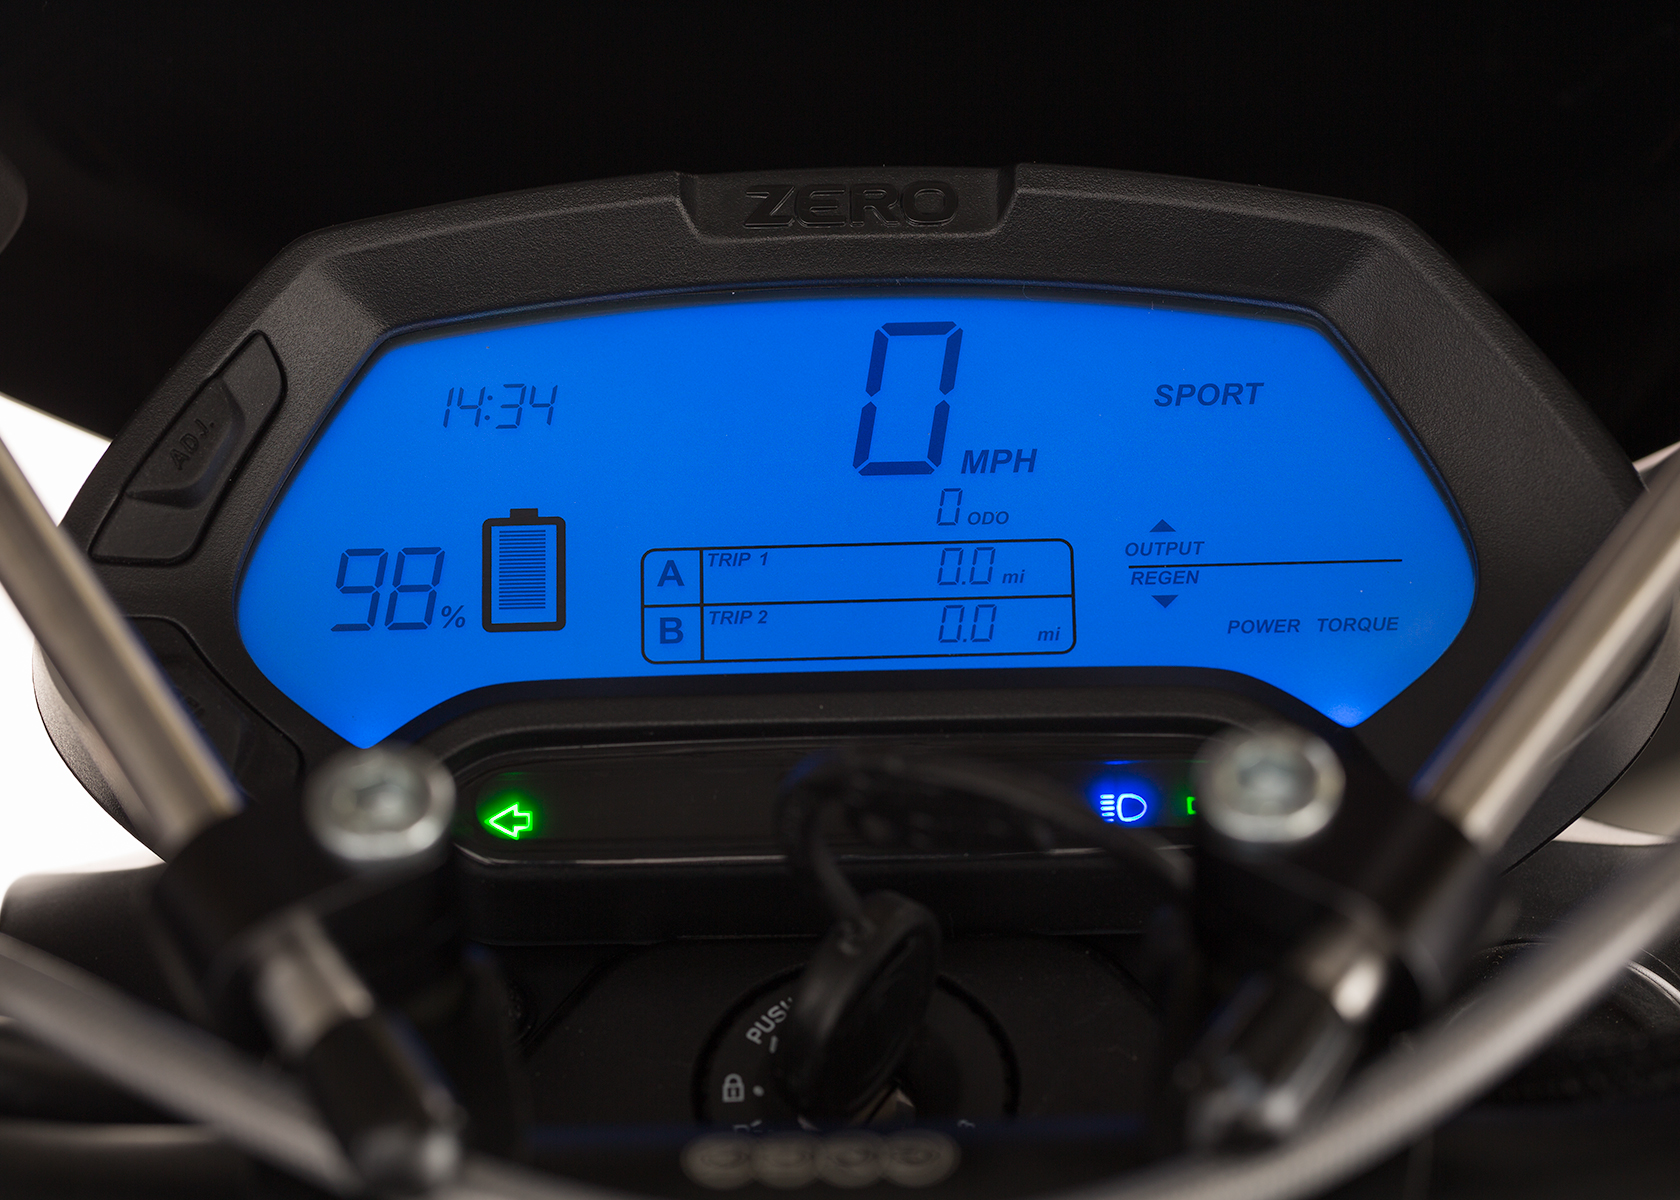 2014 Zero Police Electric Motorcycle: Dash